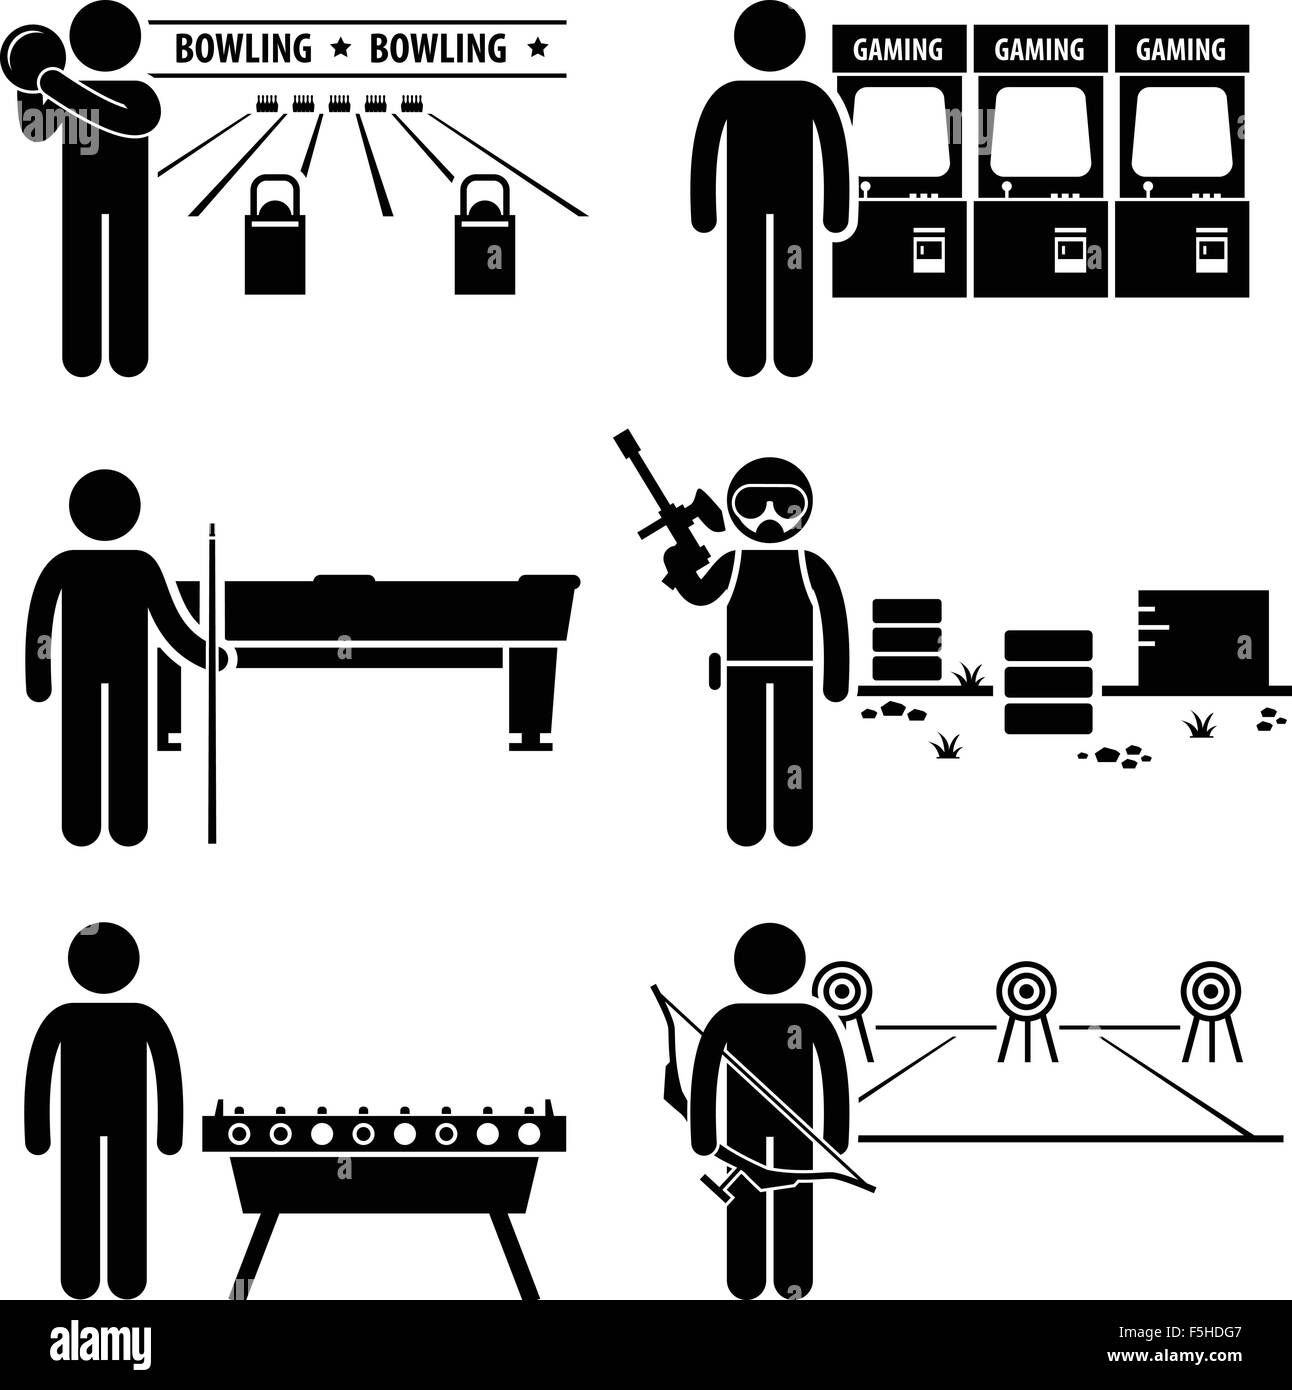 Recreational Leisure Games - Bowling, Arcade Center, Pool, Paintball, Soccer Table, Archery - Stick Figure Pictogram - Stock Image